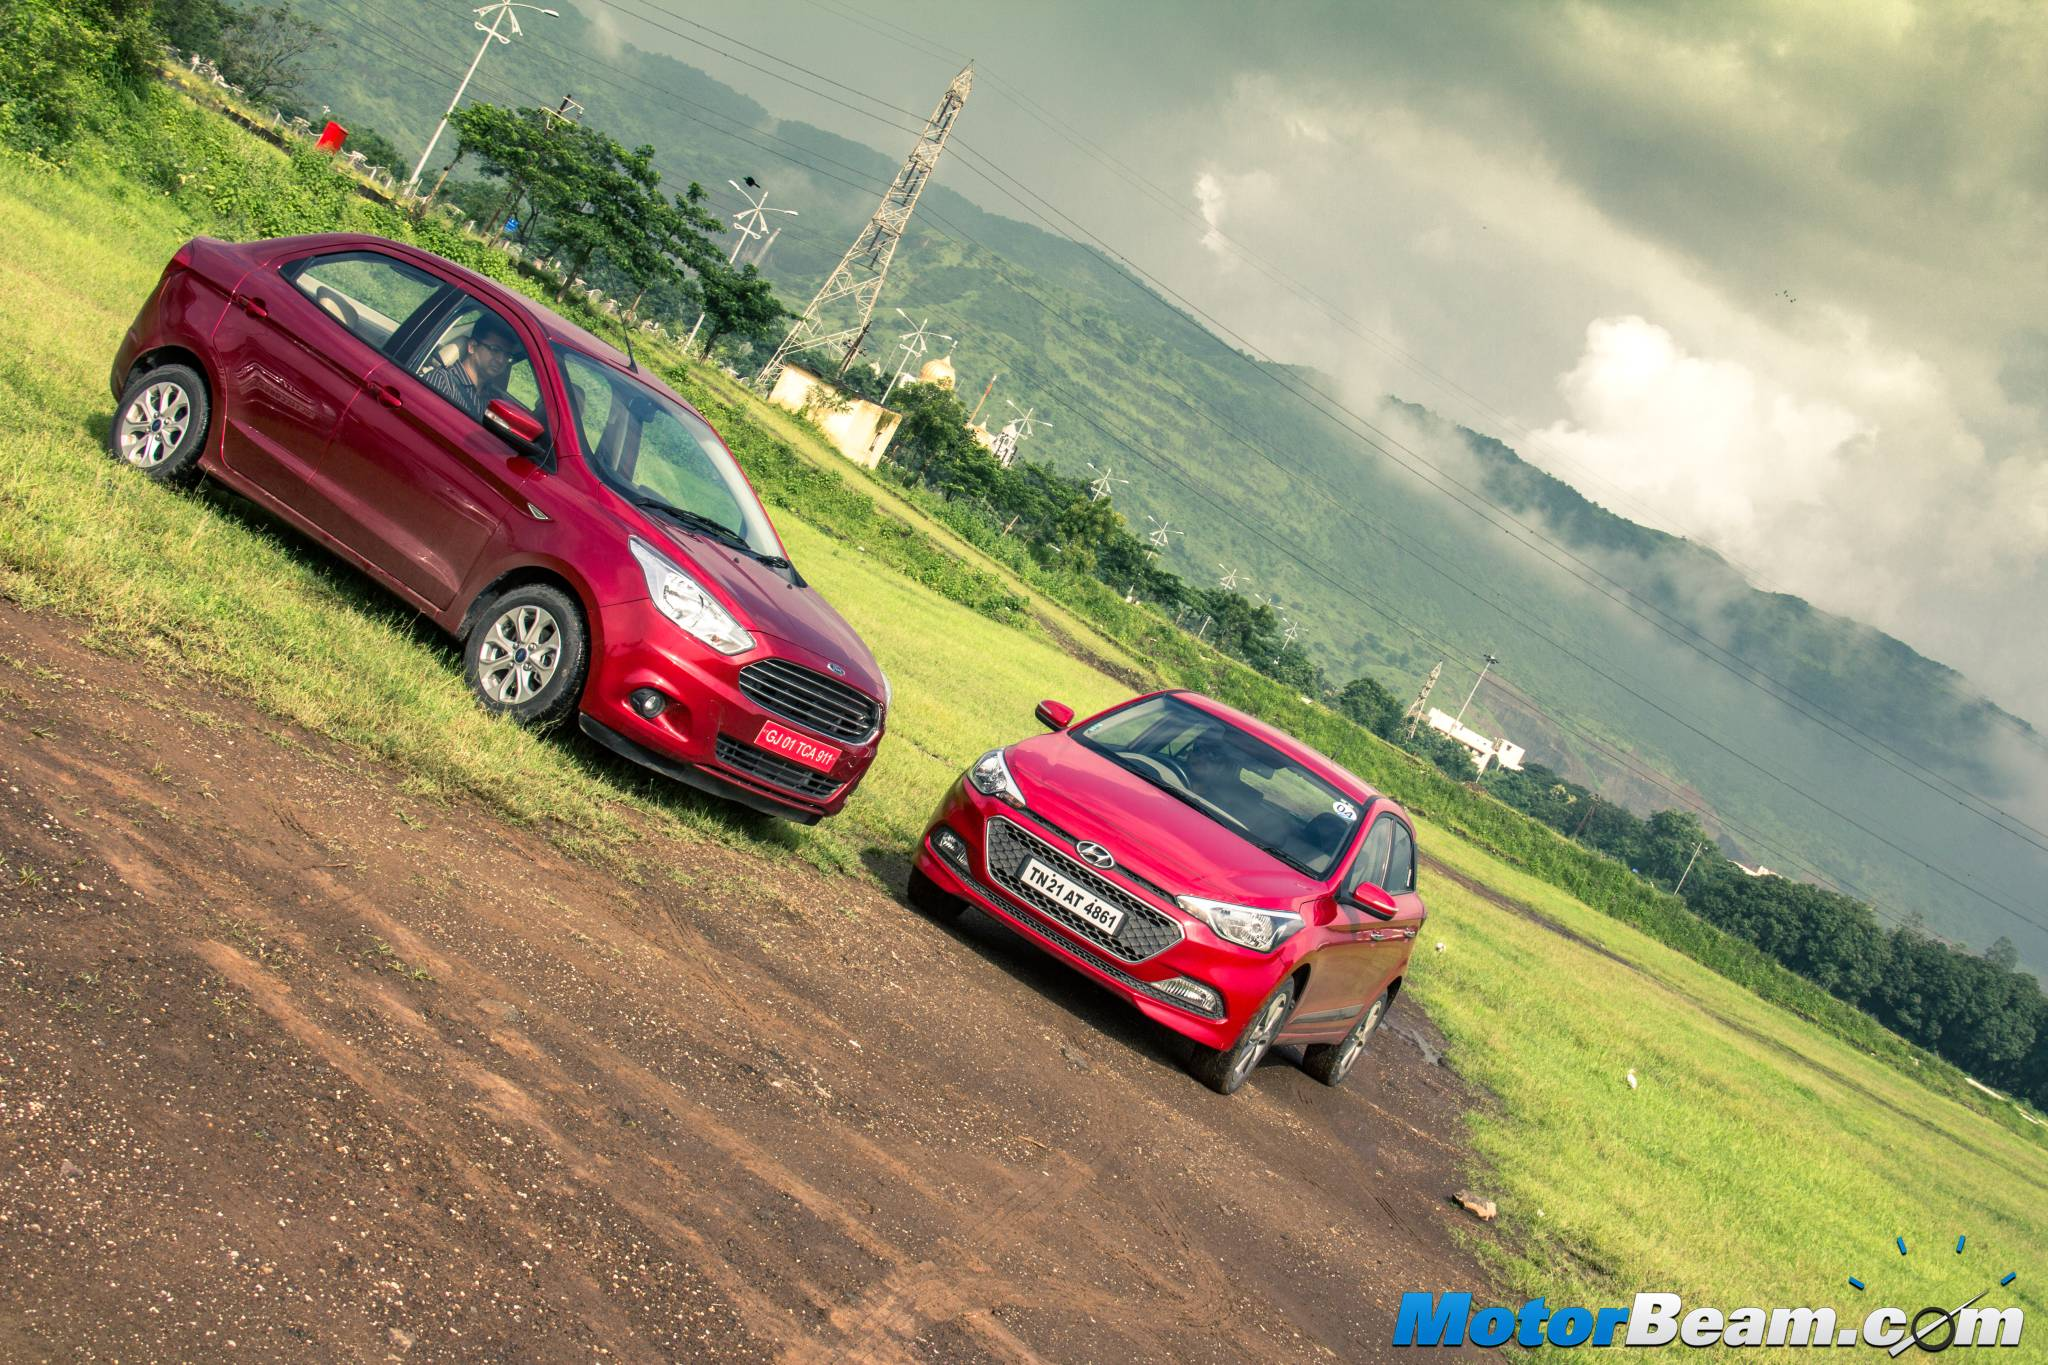 Ford Figo Aspire vs Hyundai Elite i20 Comparison